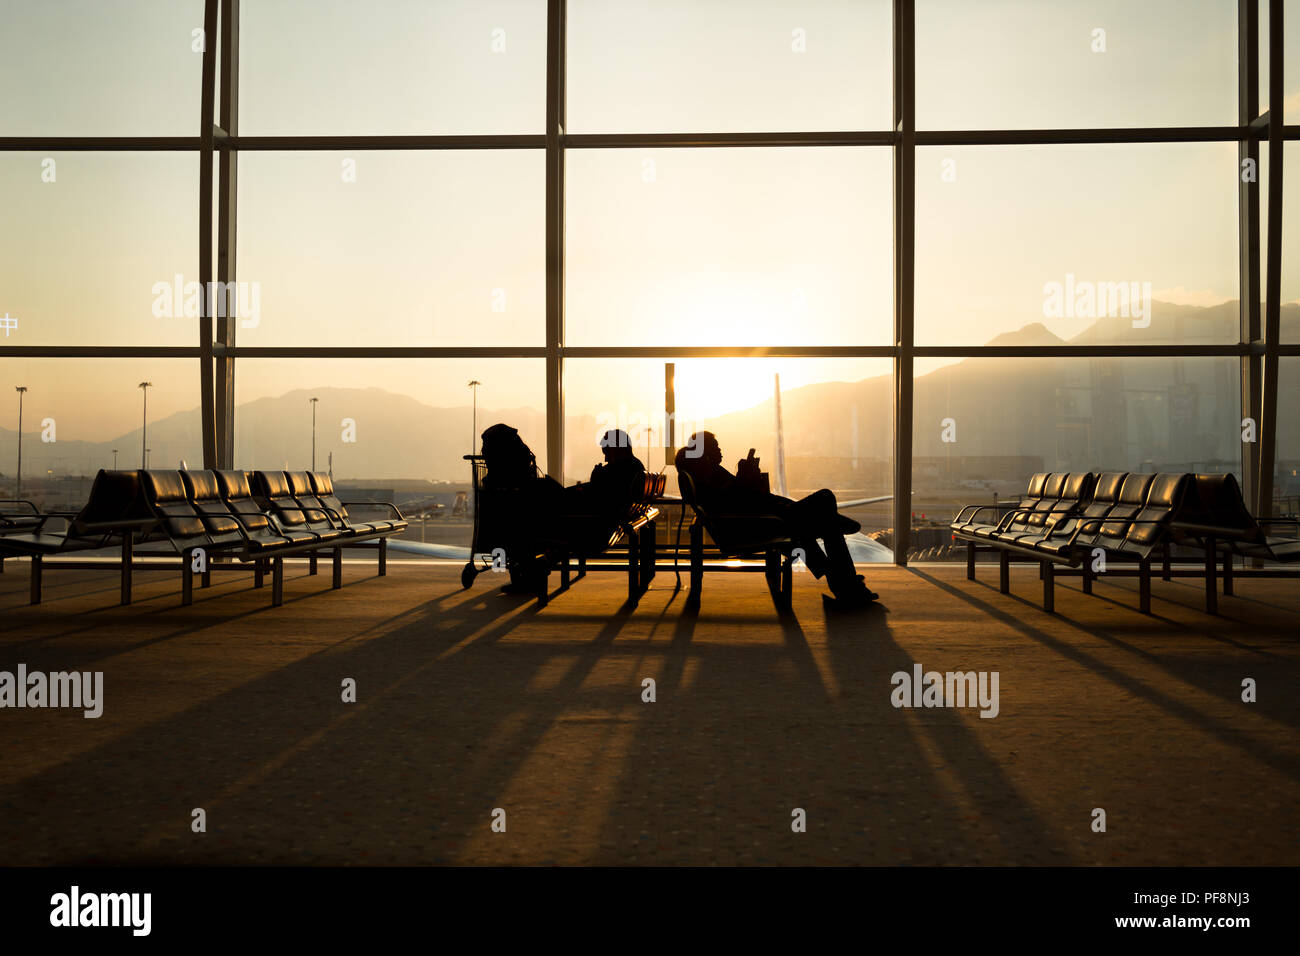 Passenger sitting in a lobby airport waiting for flight - Stock Image